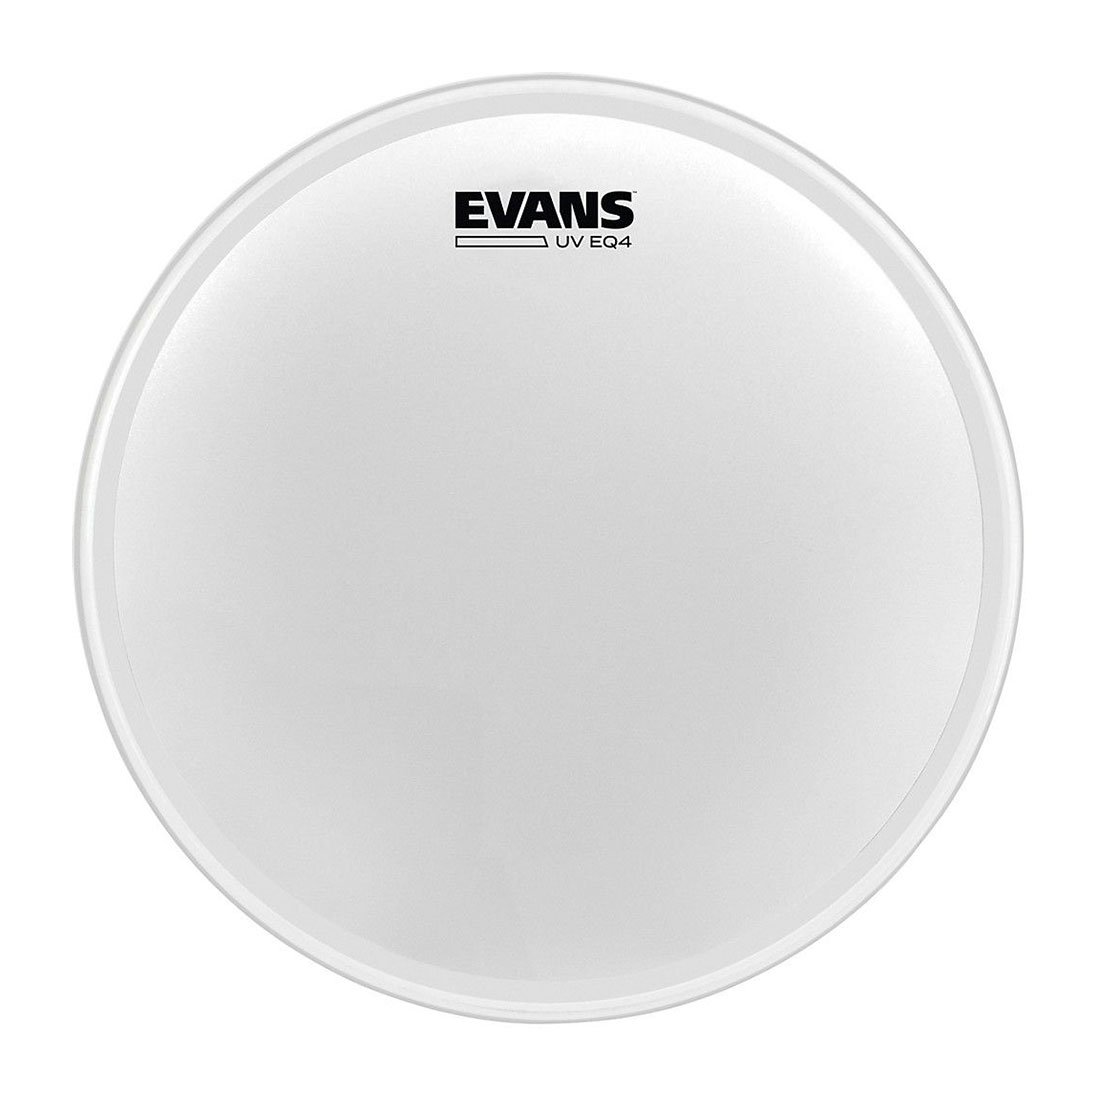 "Evans 22"" UV EQ4 Coated Bass Drum Head"